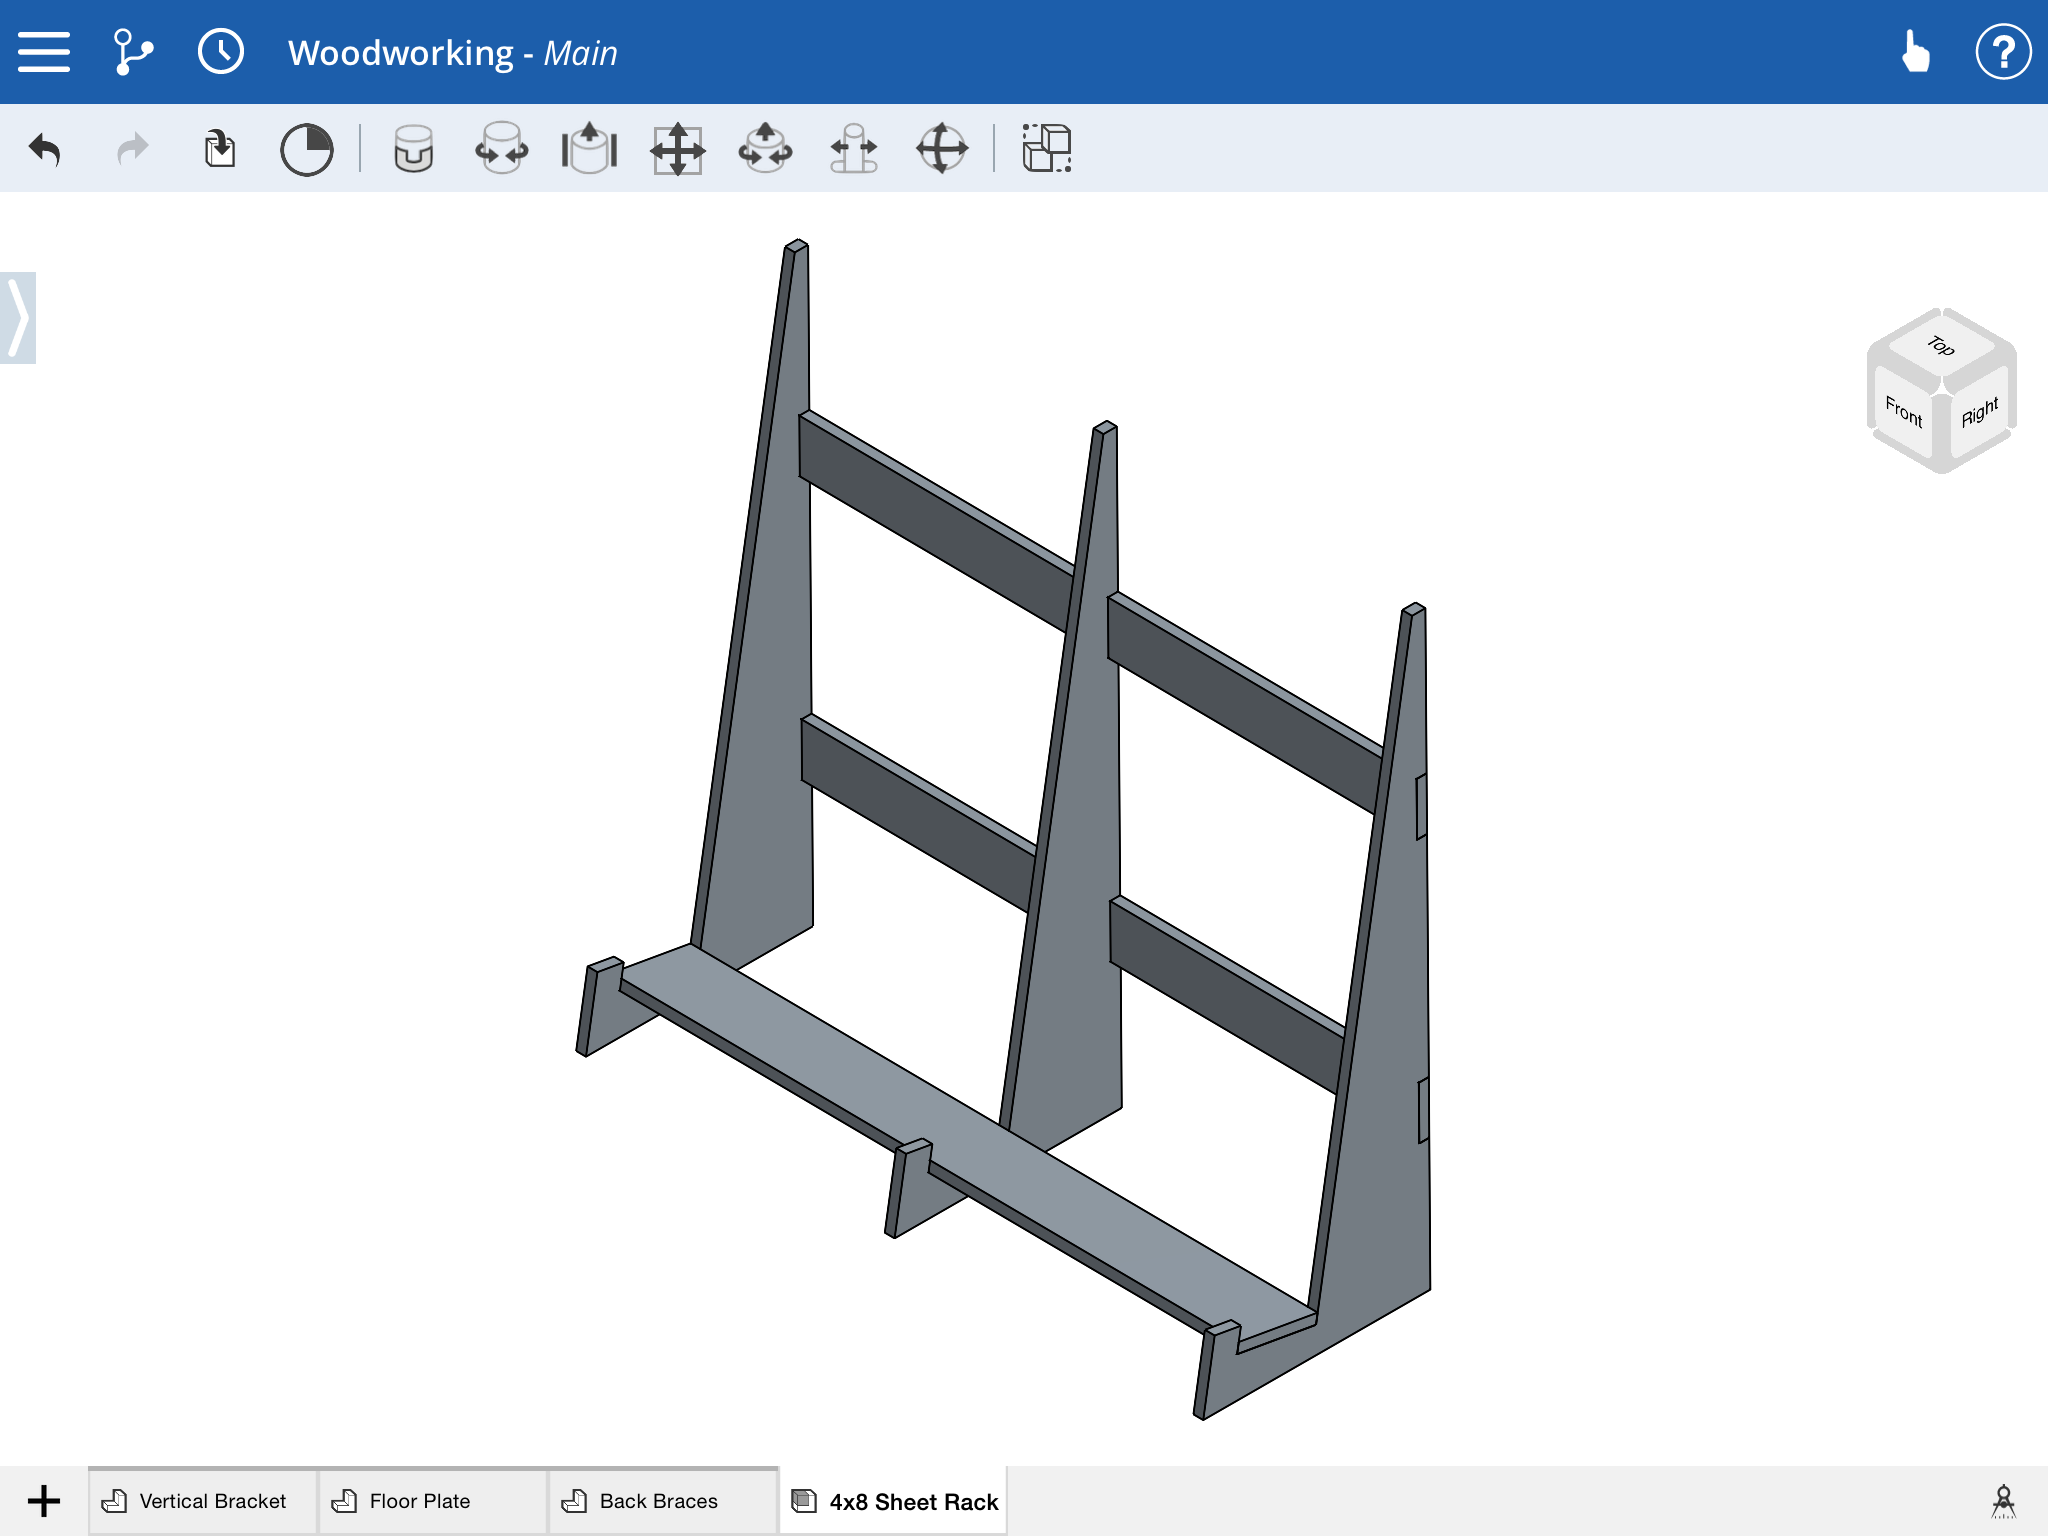 4'x8' panel holder design in Onshape cloud-based CAD